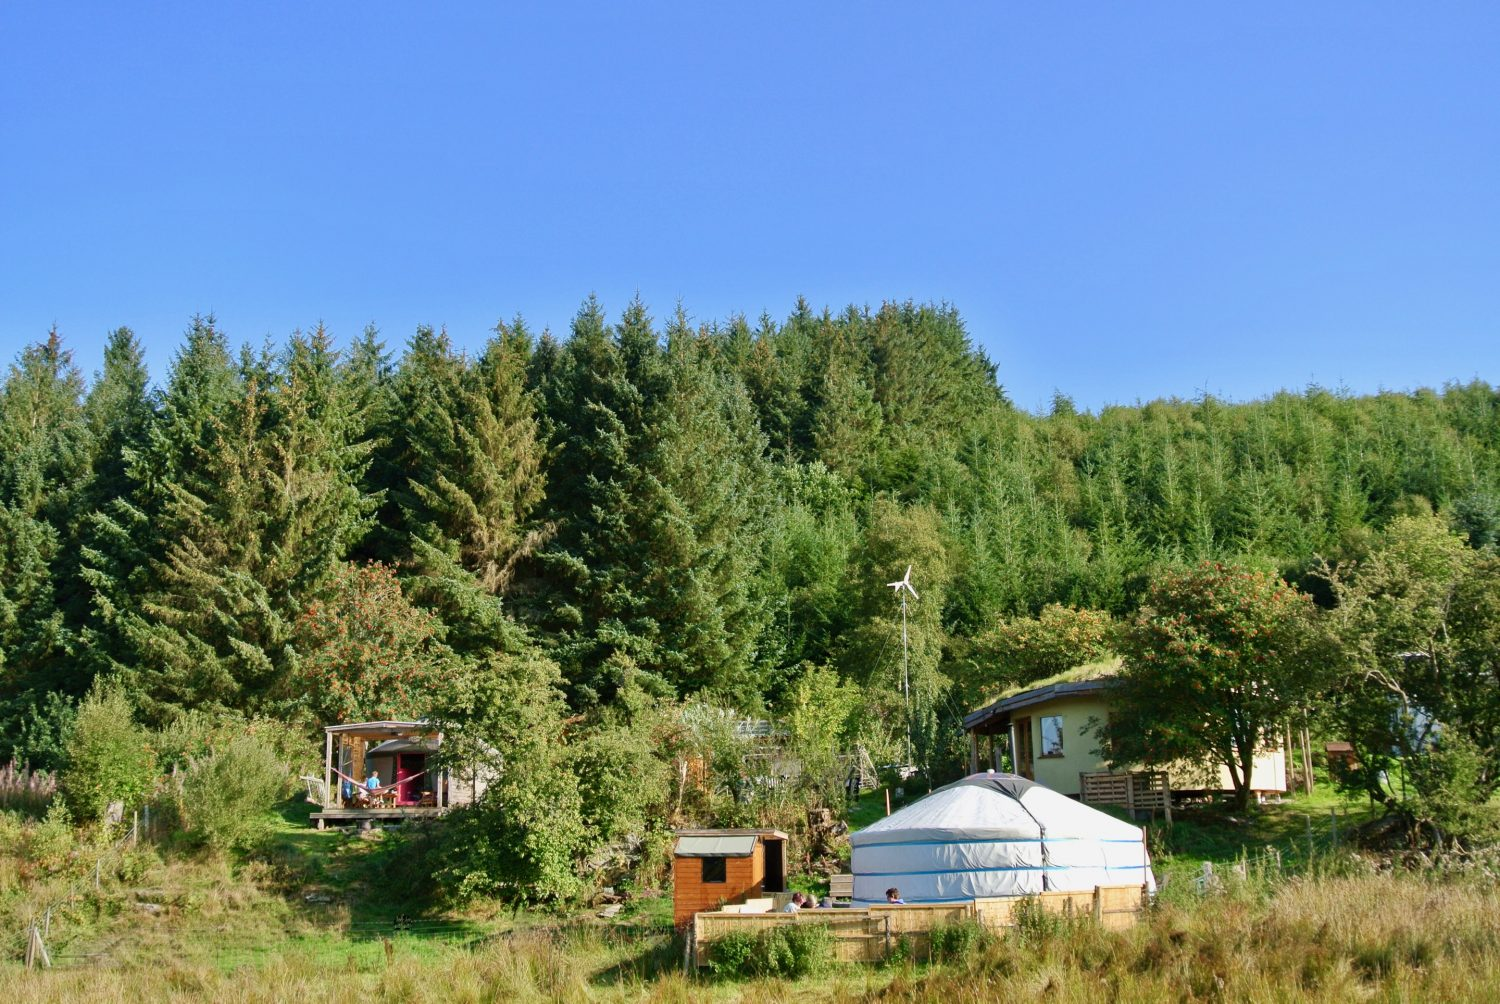 Off grid living at Ty Mam Mawr eco retreat centre is about